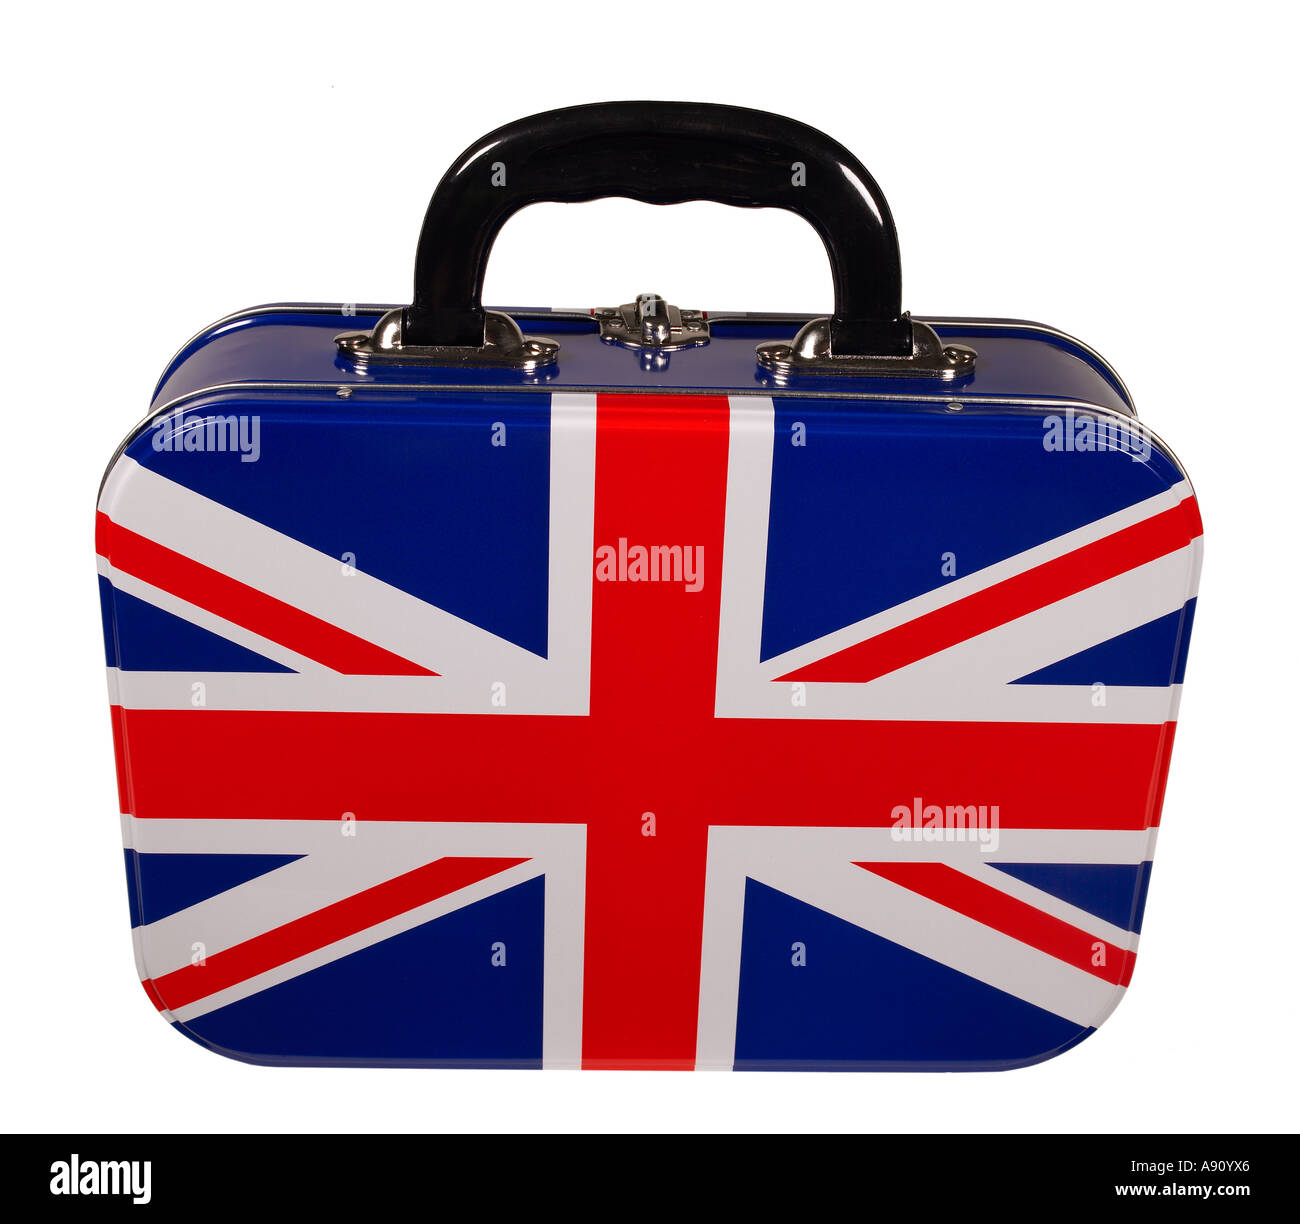 British Flag Lunch Box Objects - Stock Image